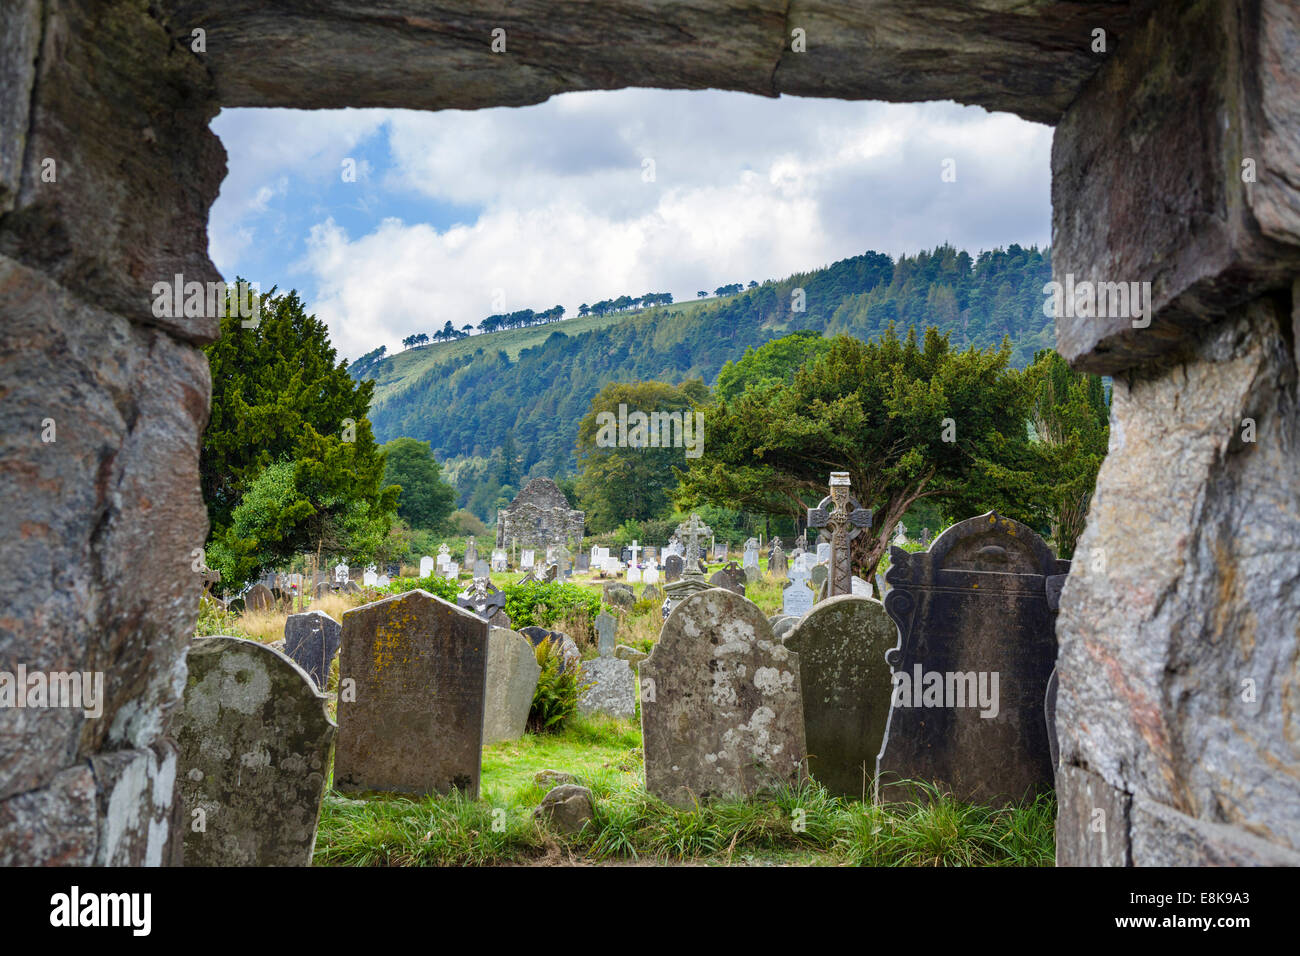 Cemetery from the Cathedral entrance in the old monastic settlement of Glendalough, County Wicklow, Republic of - Stock Image